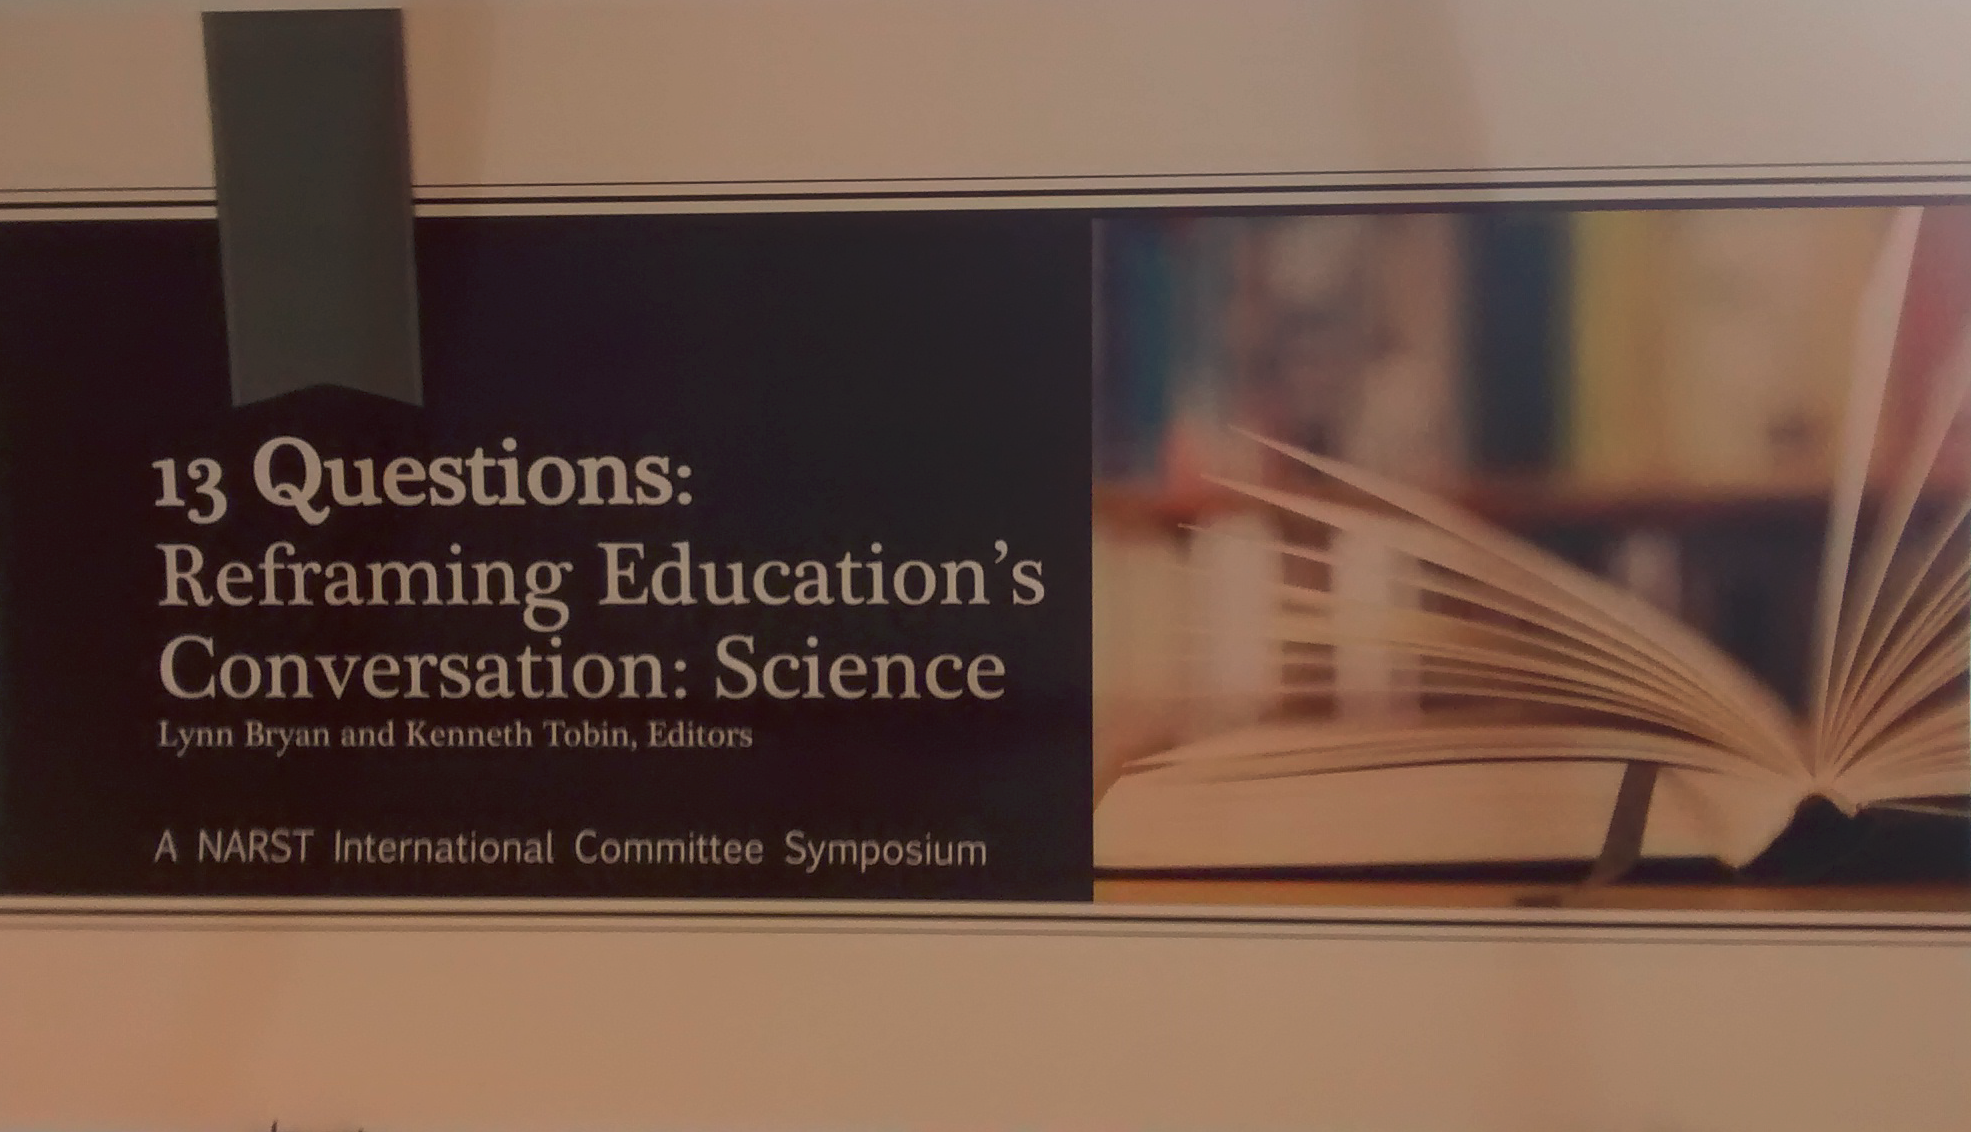 Bryan, L. & Tobin, K. (upcoming). 13 Questions: Reframing Education's Conversation: Science. New York: Peter-Lang.